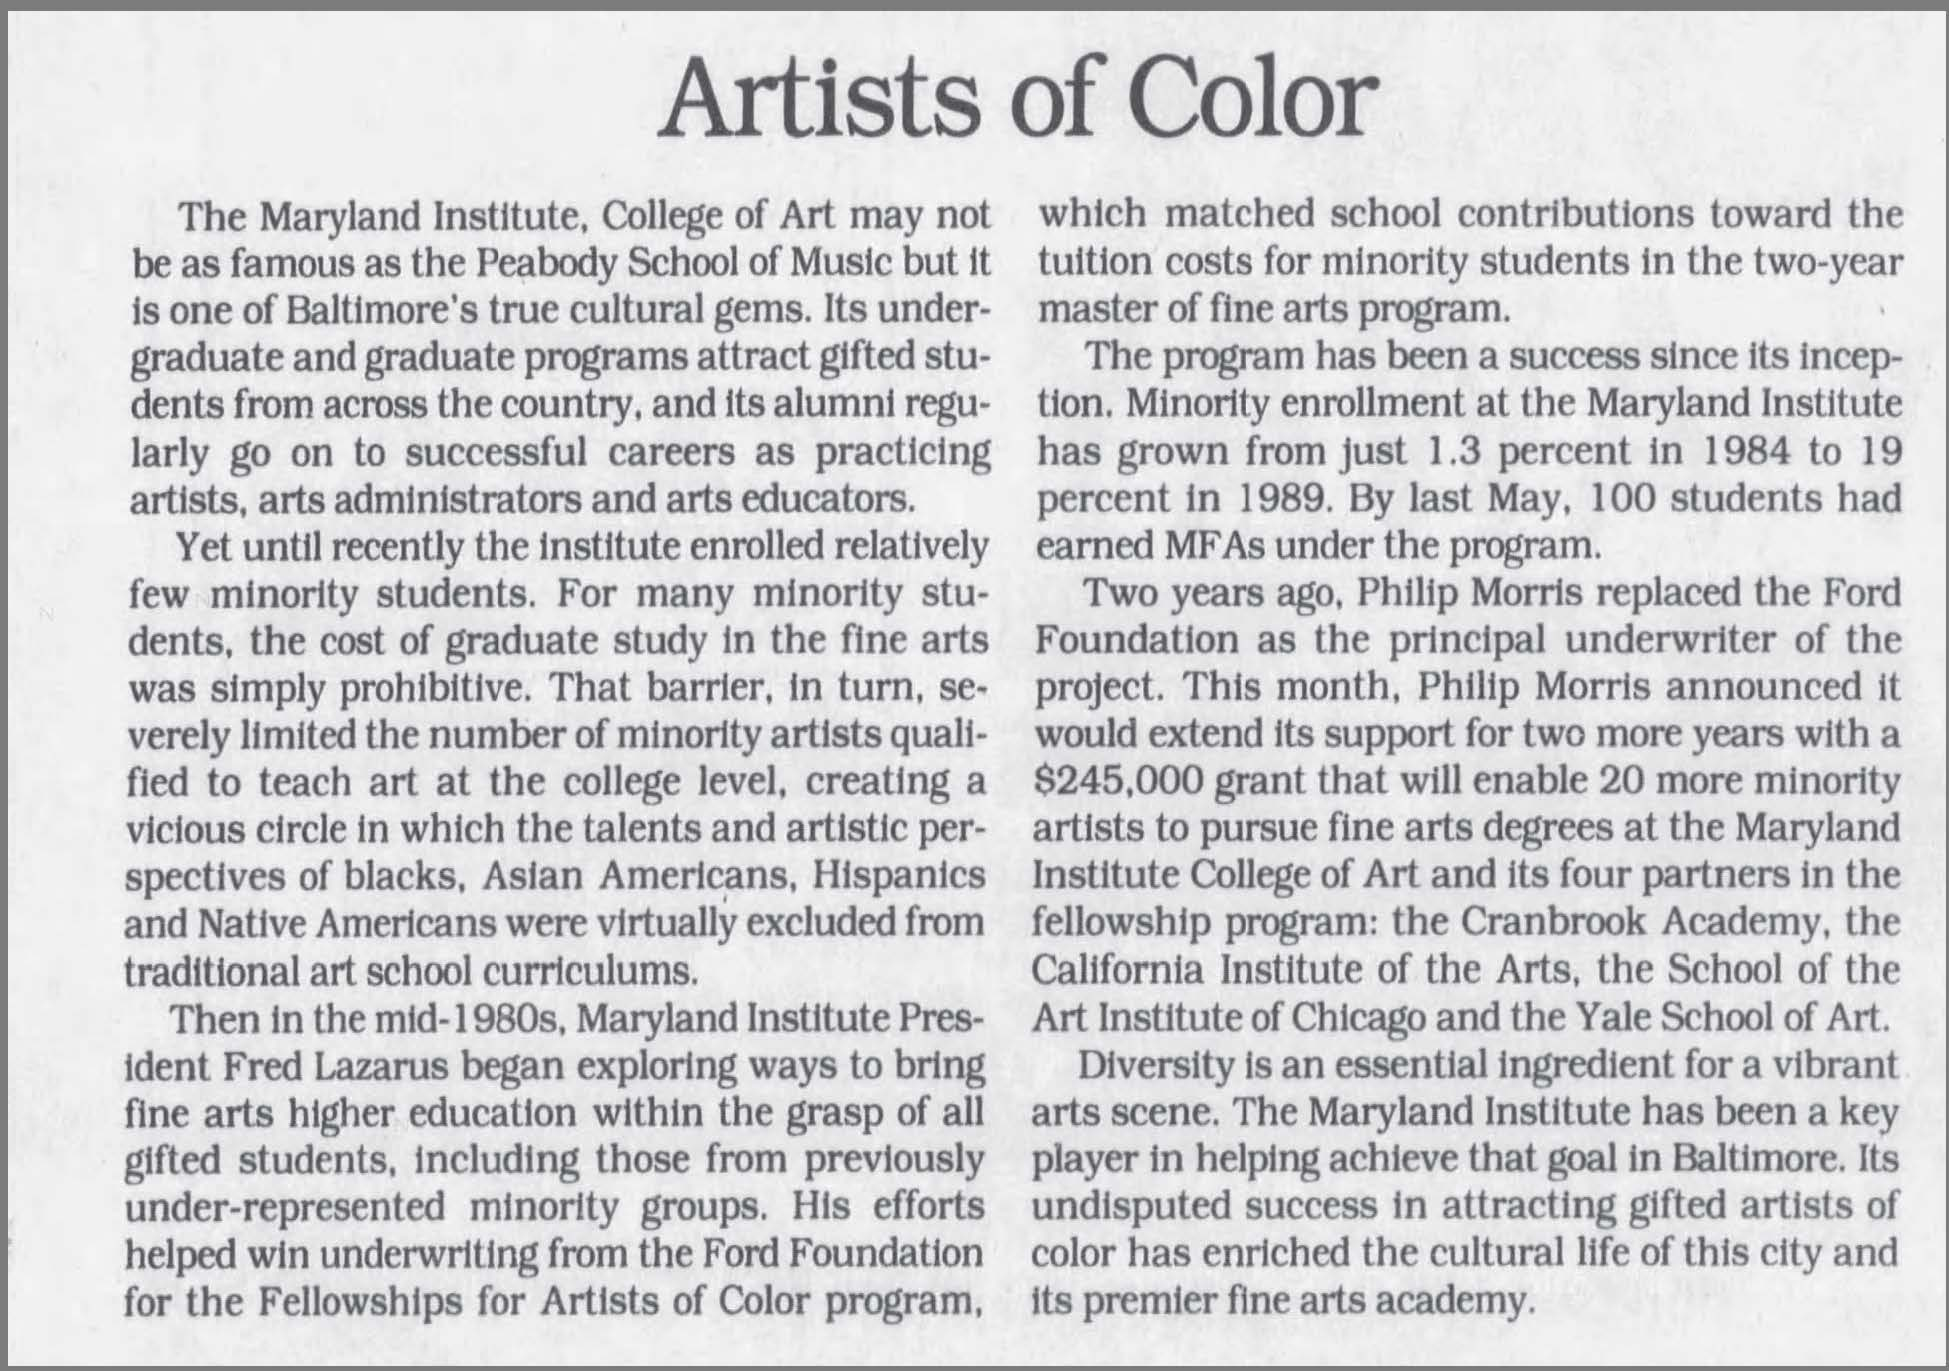 Ford_Foundation_for_the_Fellowships_for_Artists_of_Color_program.jpg